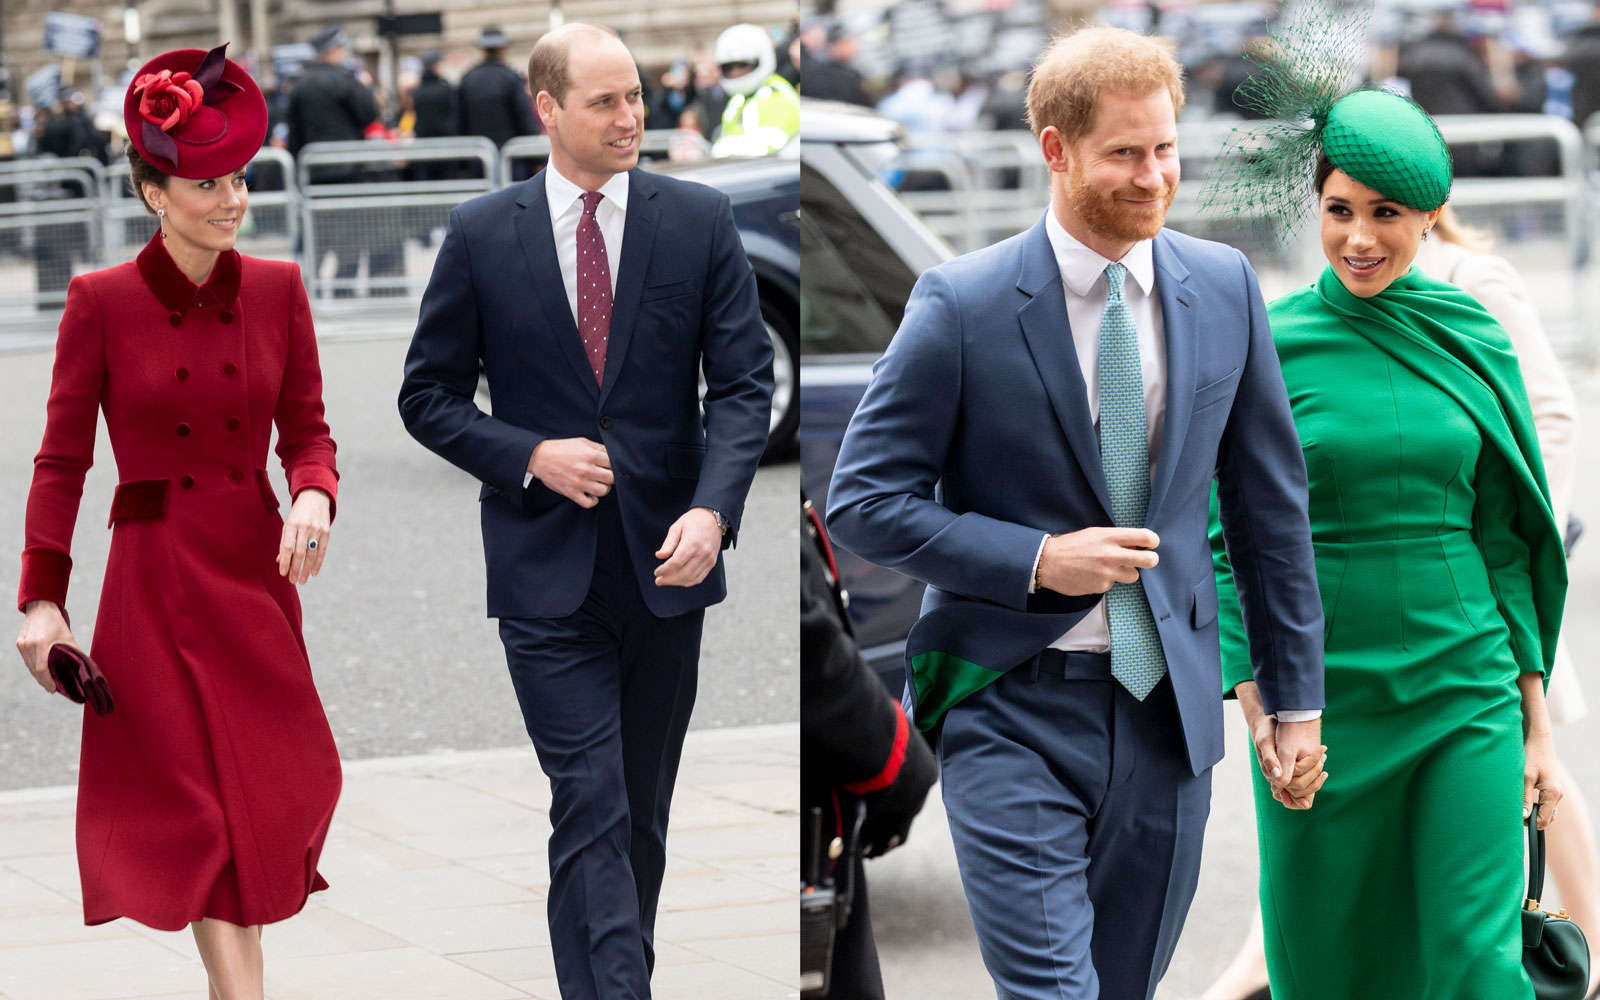 Kate Middleton, Prince William, Prince Harry, and Meghan Markle attending Commonwealth Day 2020